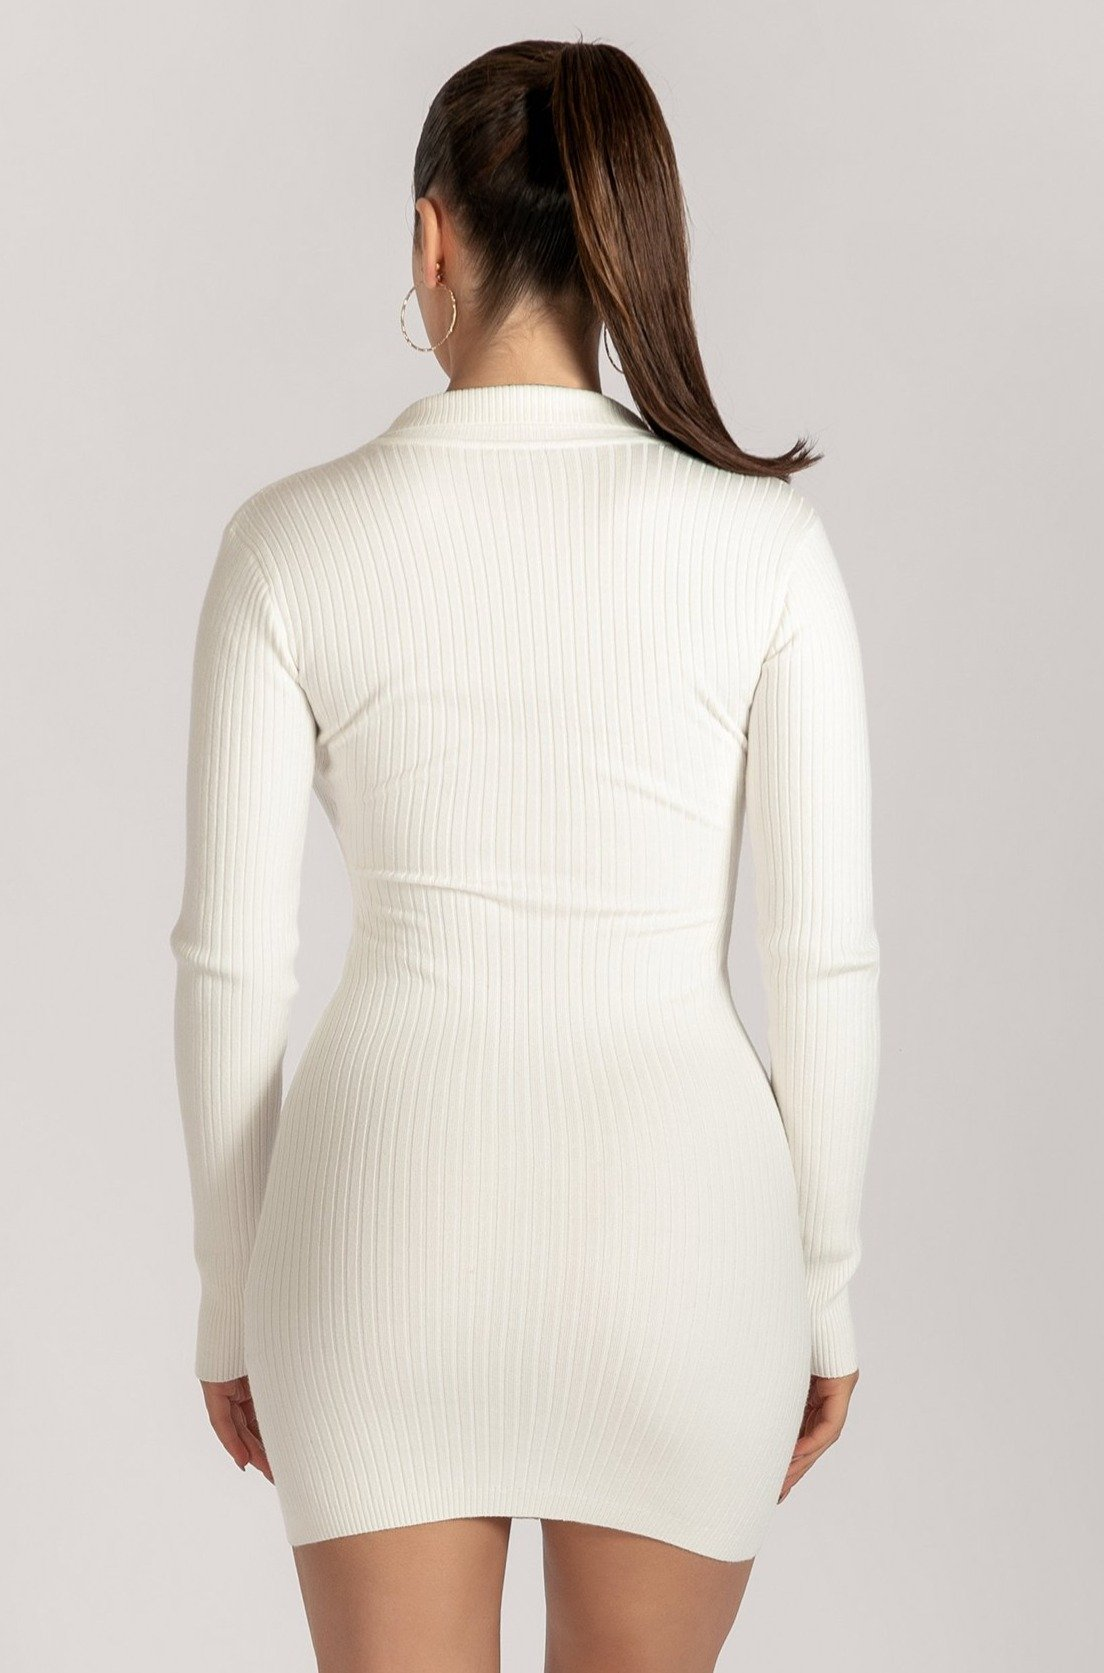 Amae Long Sleeve Mini Dress - White - MESHKI